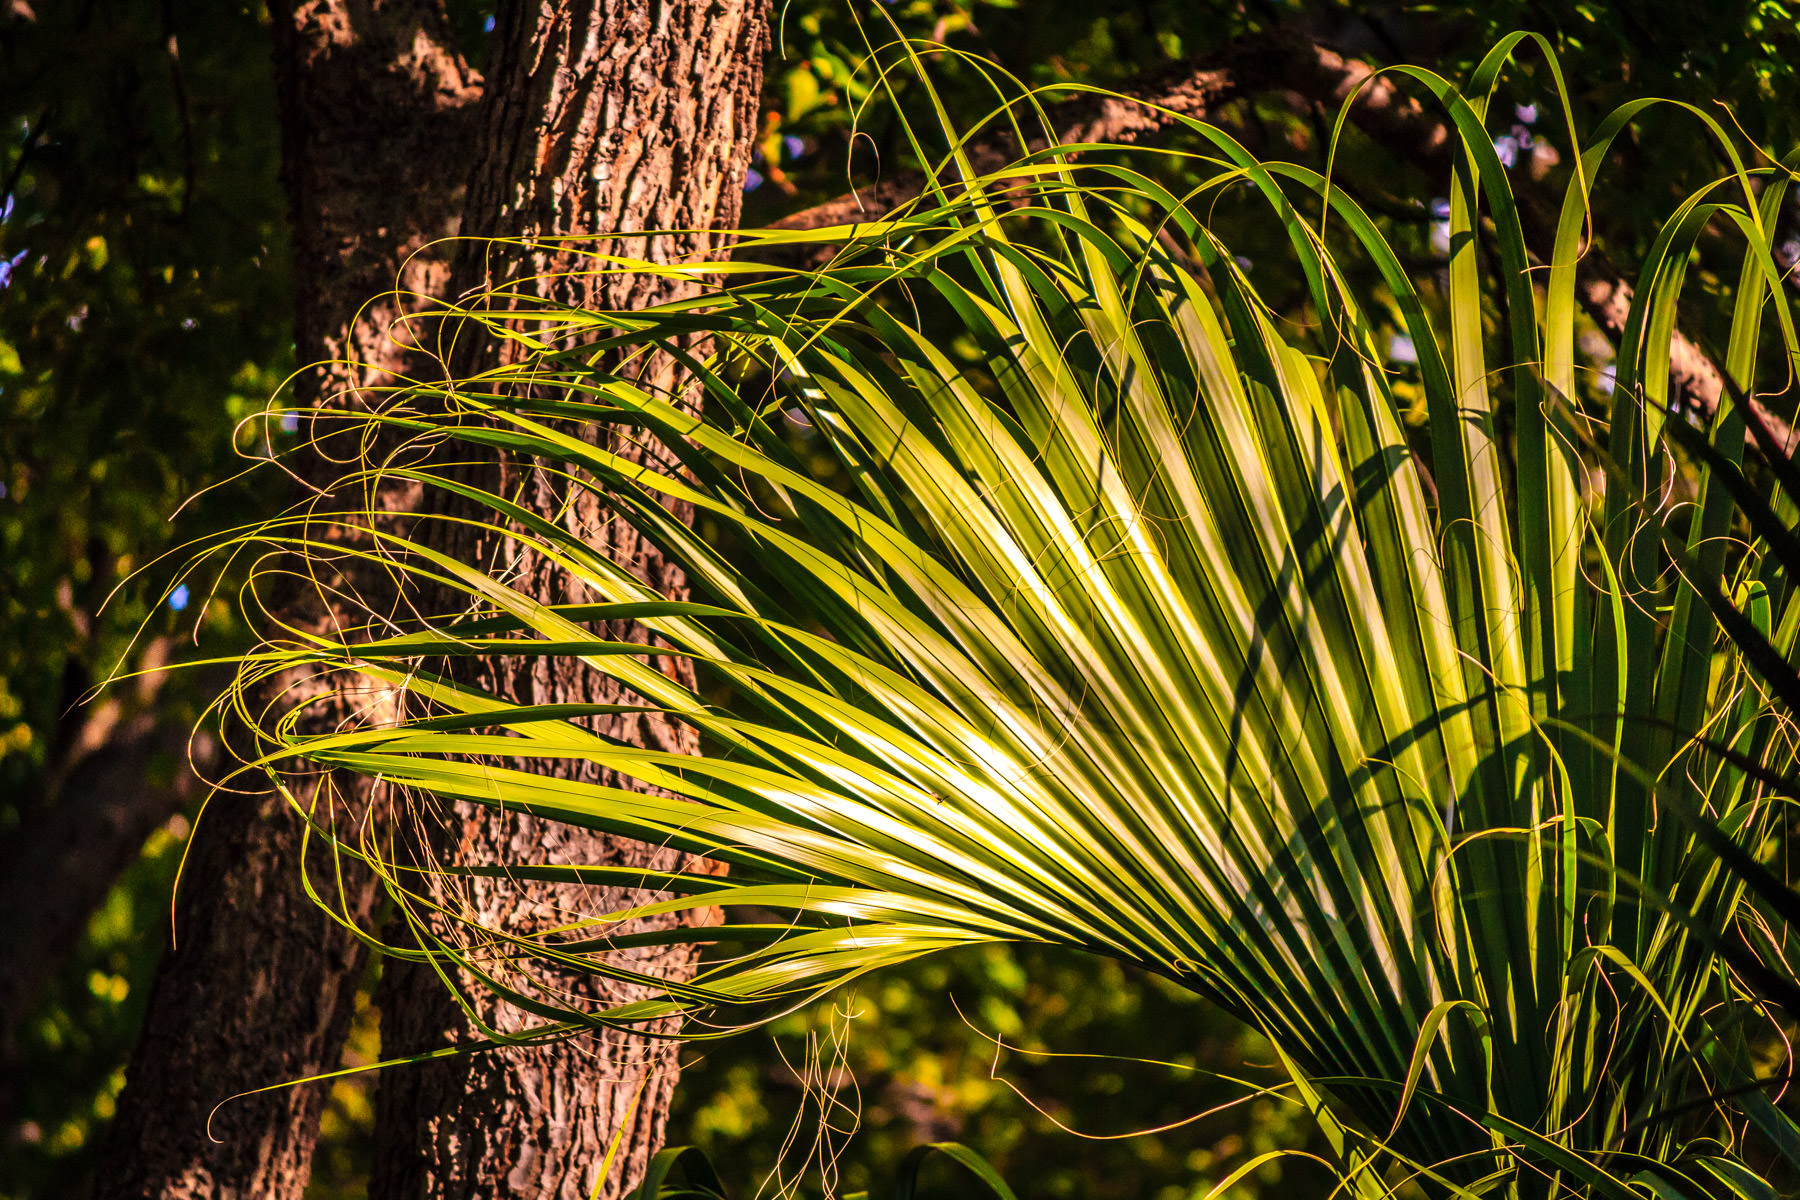 A palm frond catches the afternoon light at Addison, Texas' Bosque Park.